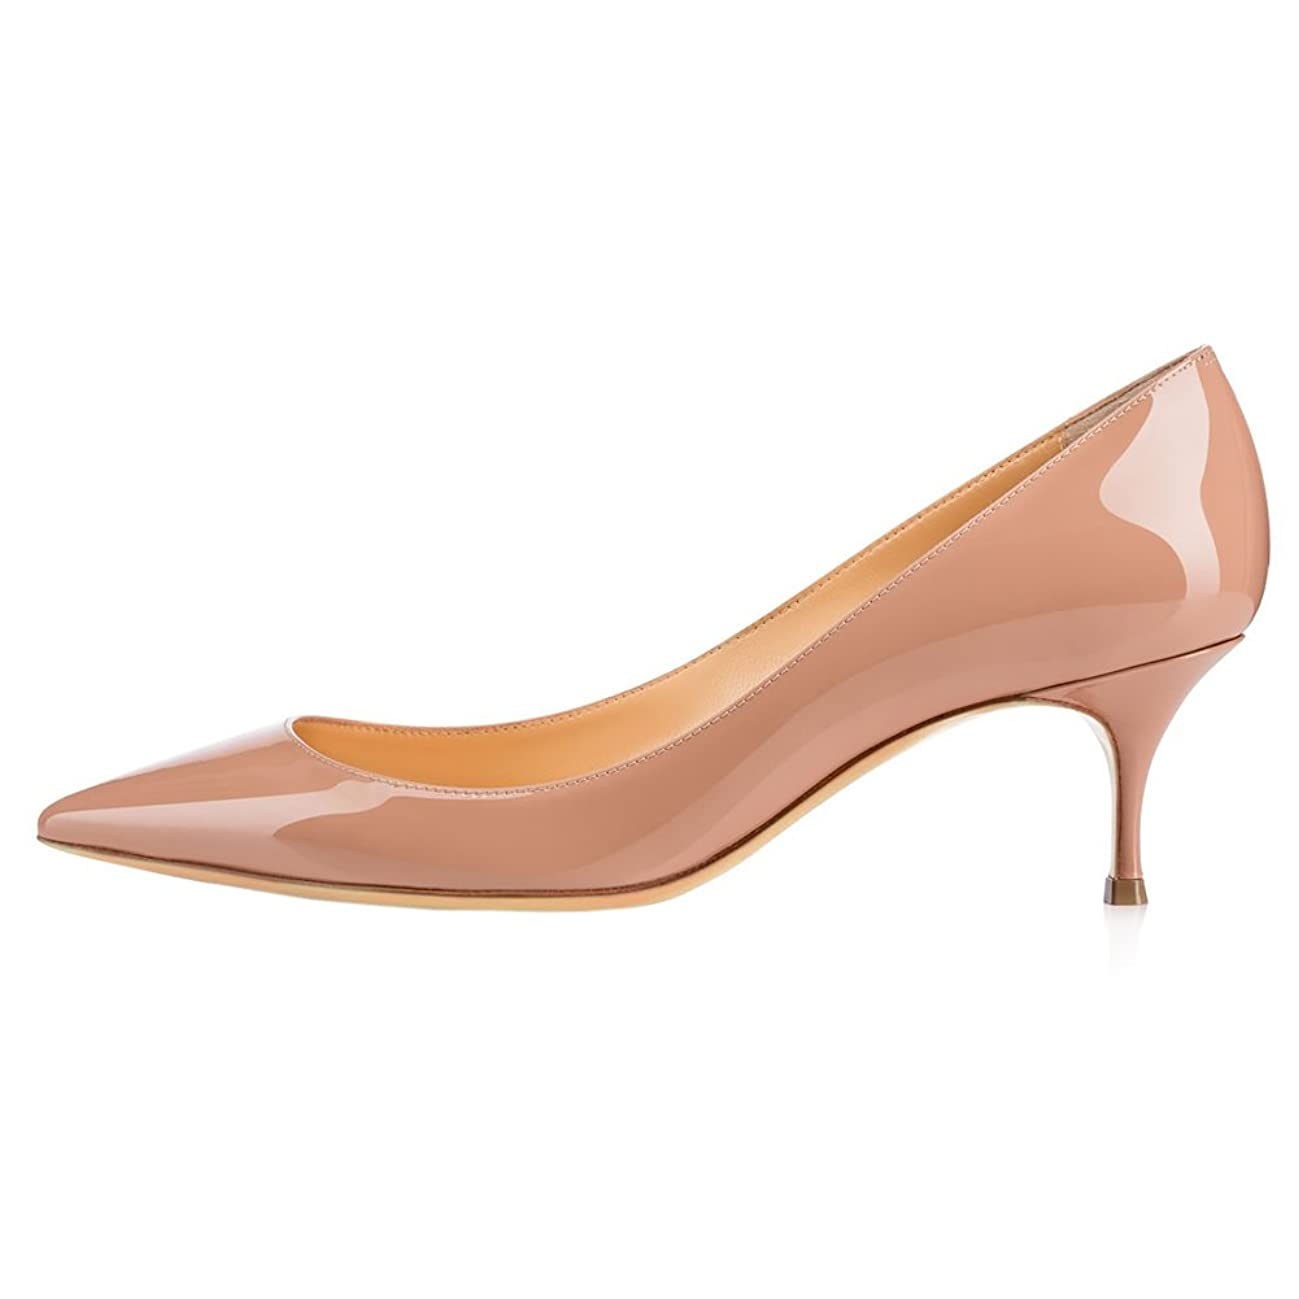 June in Love Women's Low Heels Shoes Pointy Toe Daily Pumps